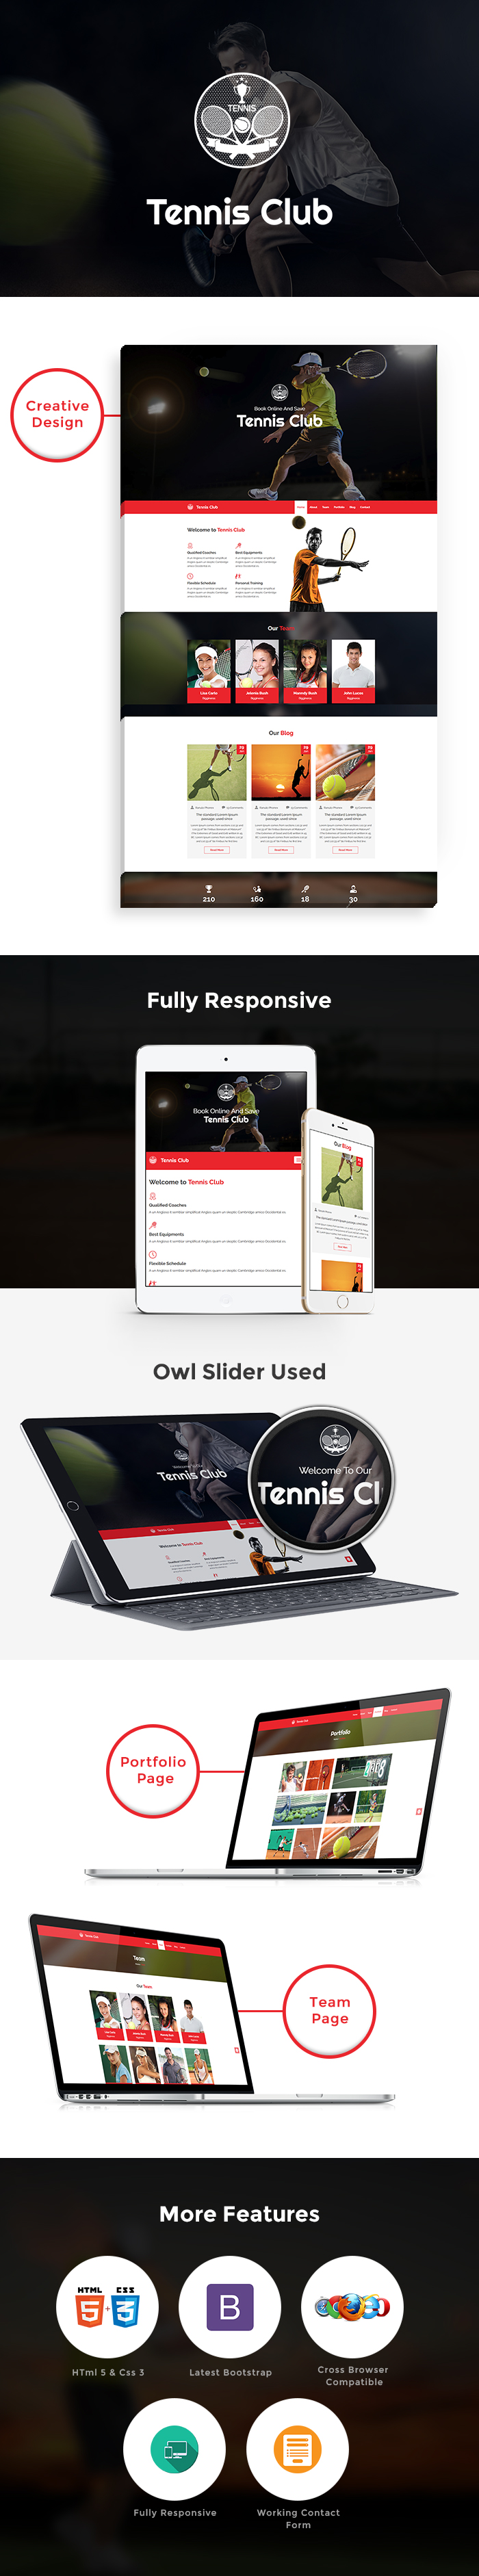 Tennis Club HTML Website Templates